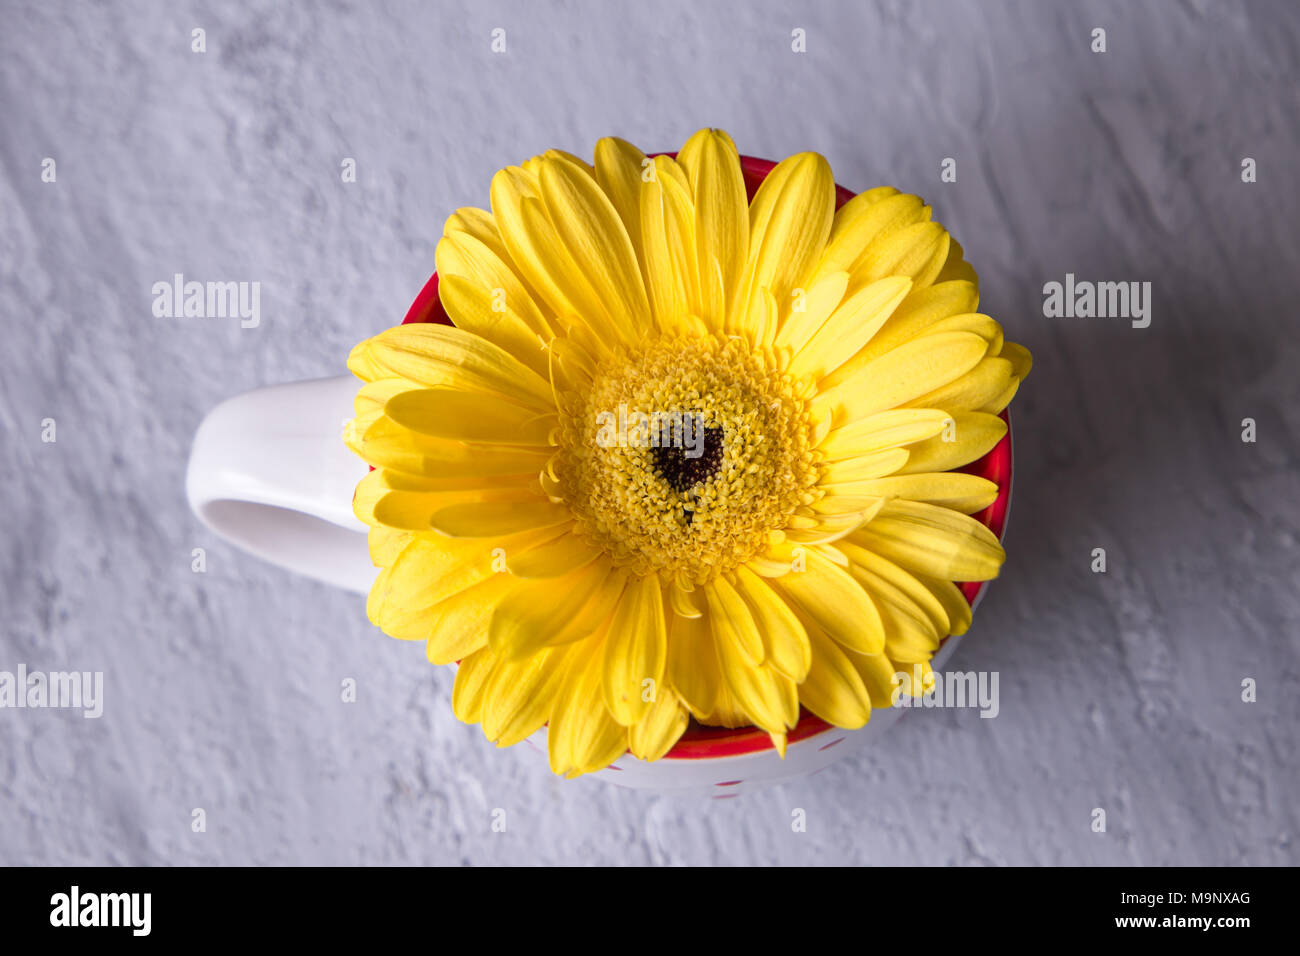 Gerbera Daisy Yellow Flower Im Tea Cup On Grey Background Stock